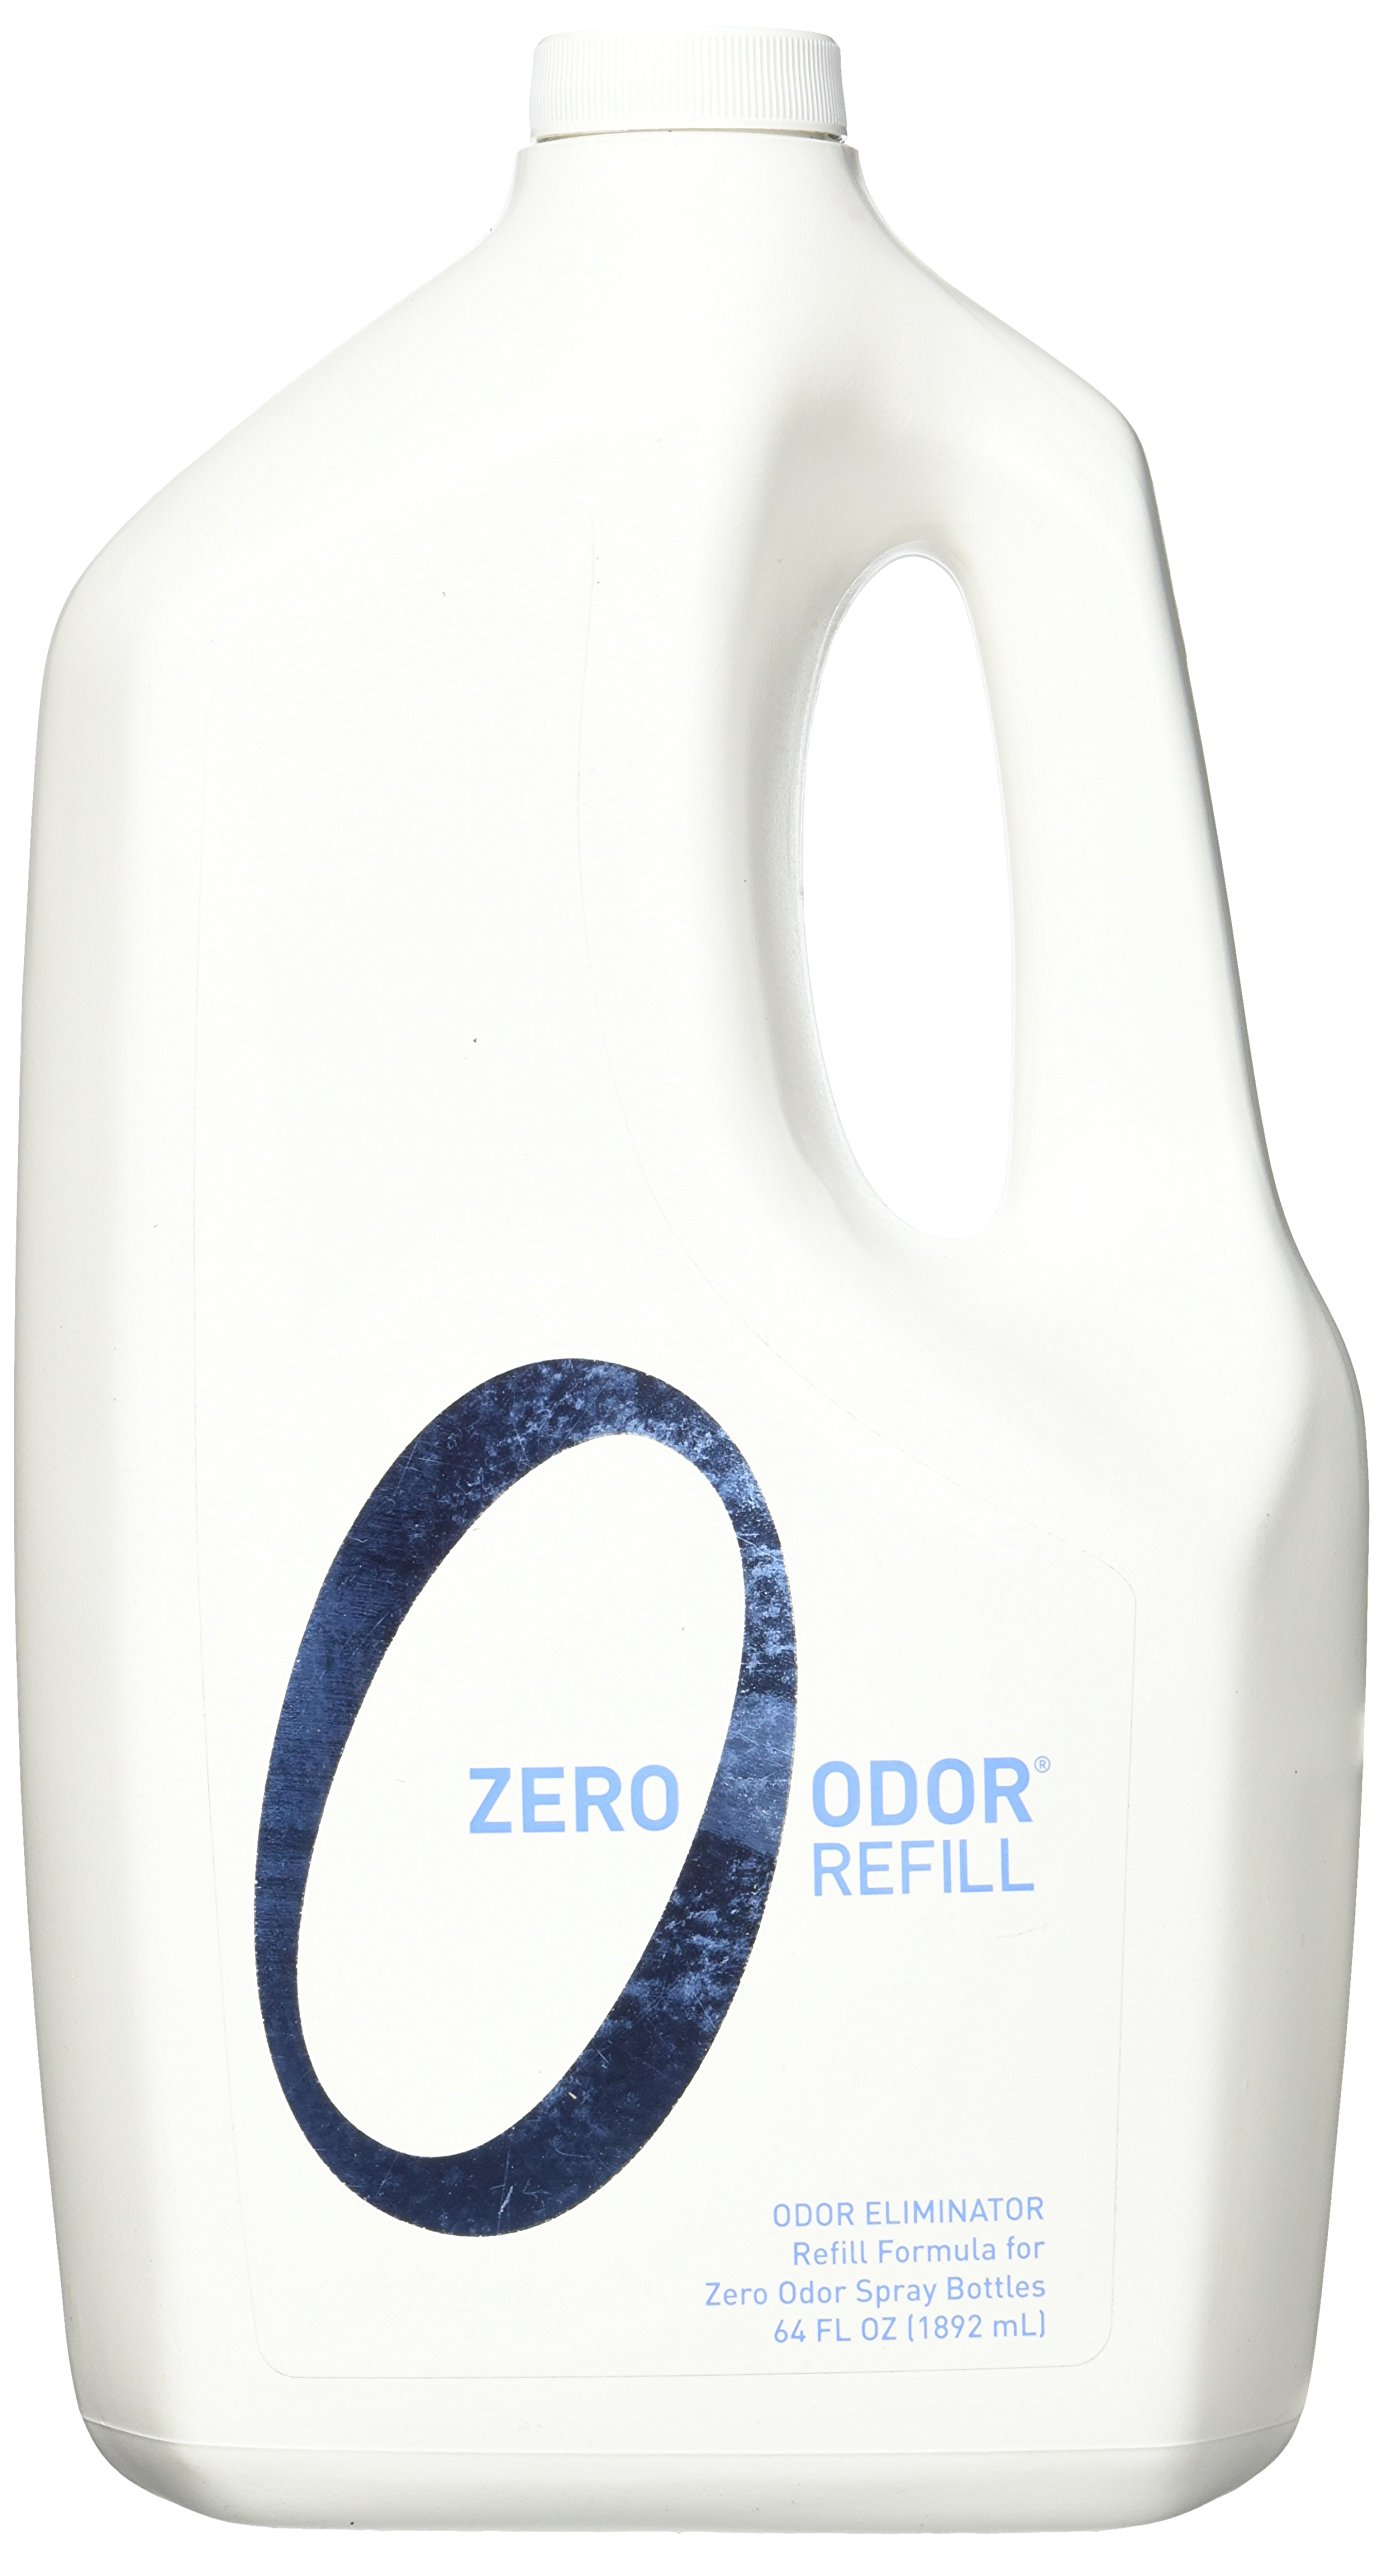 Zero Odor General Household Odor Eliminator Refill Pack, 64-Ounce by Zero Odor